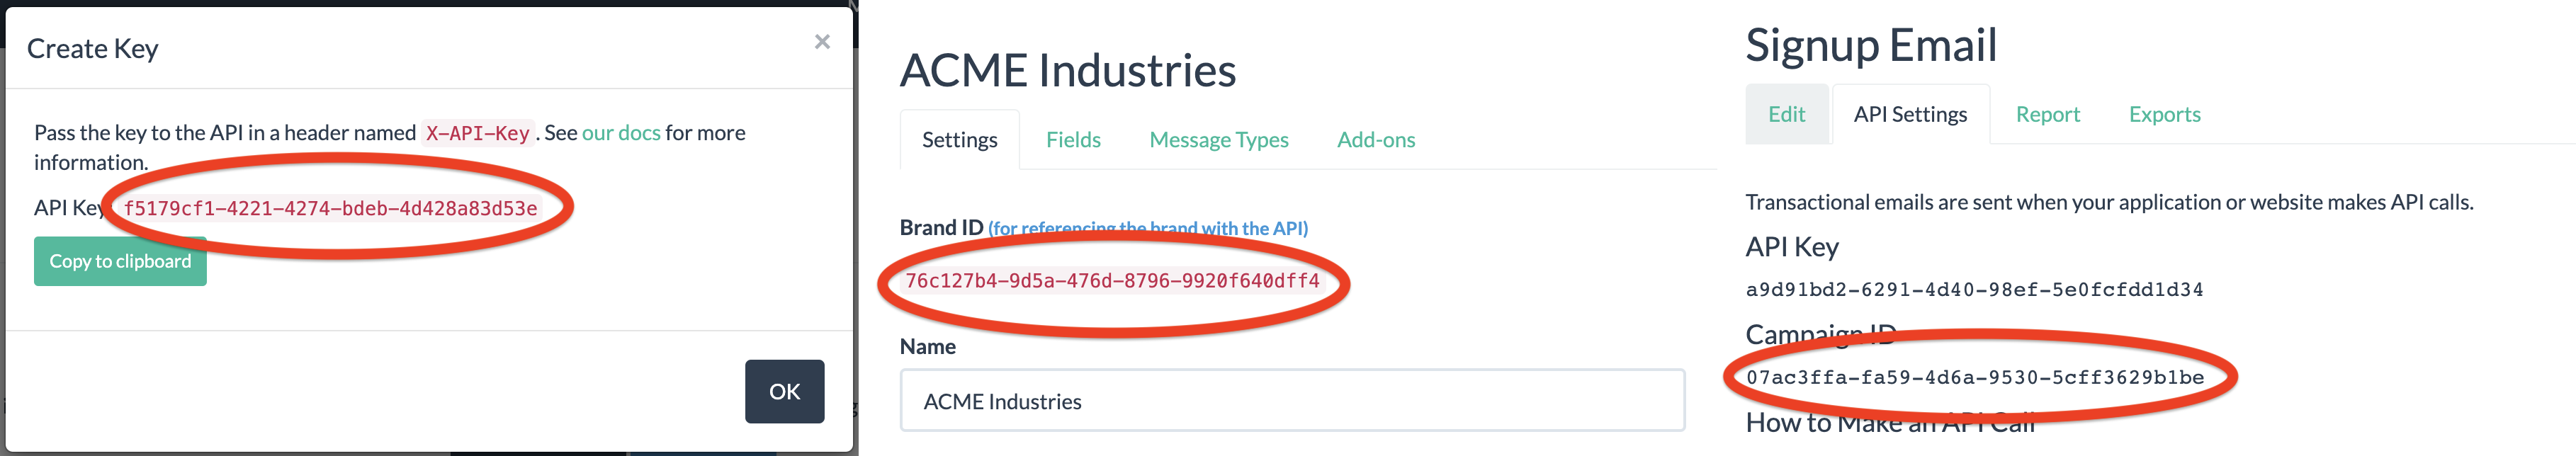 Location of the API key, brand ID, and campaign ID